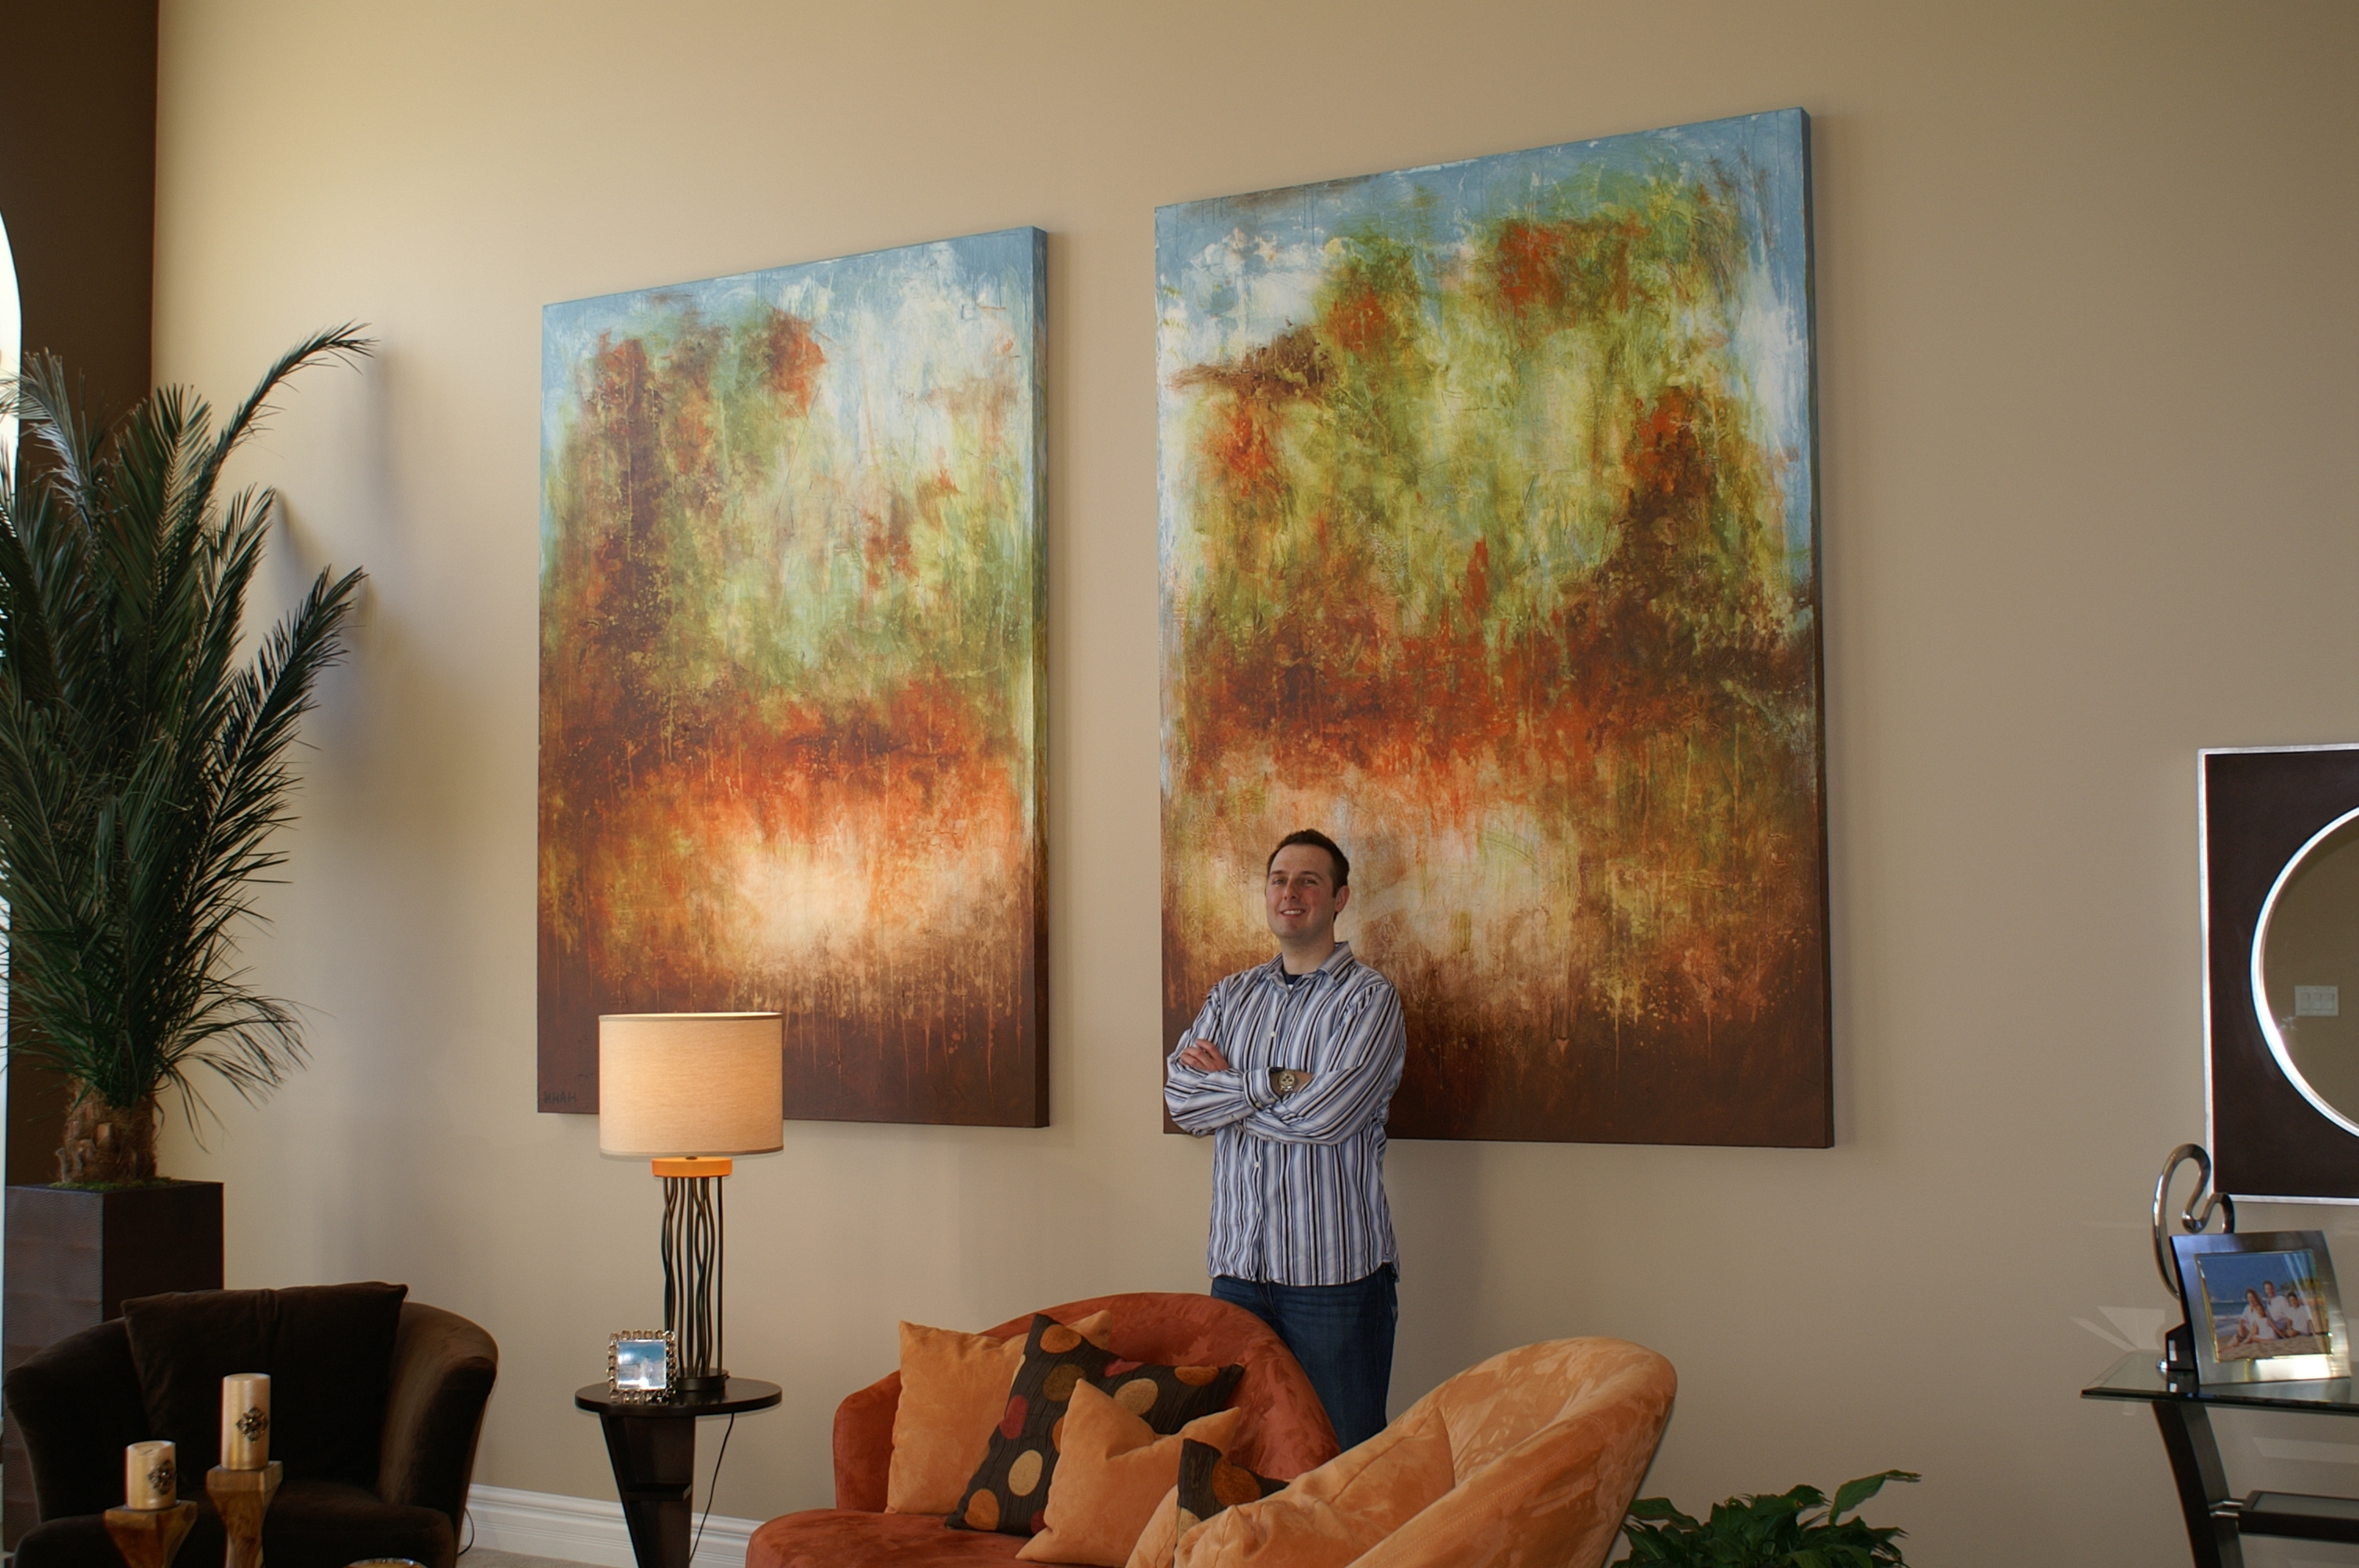 Oversized Commissioned Painting For A Two Story Great Room – Andy Pertaining To Most Current Huge Abstract Wall Art (View 13 of 15)